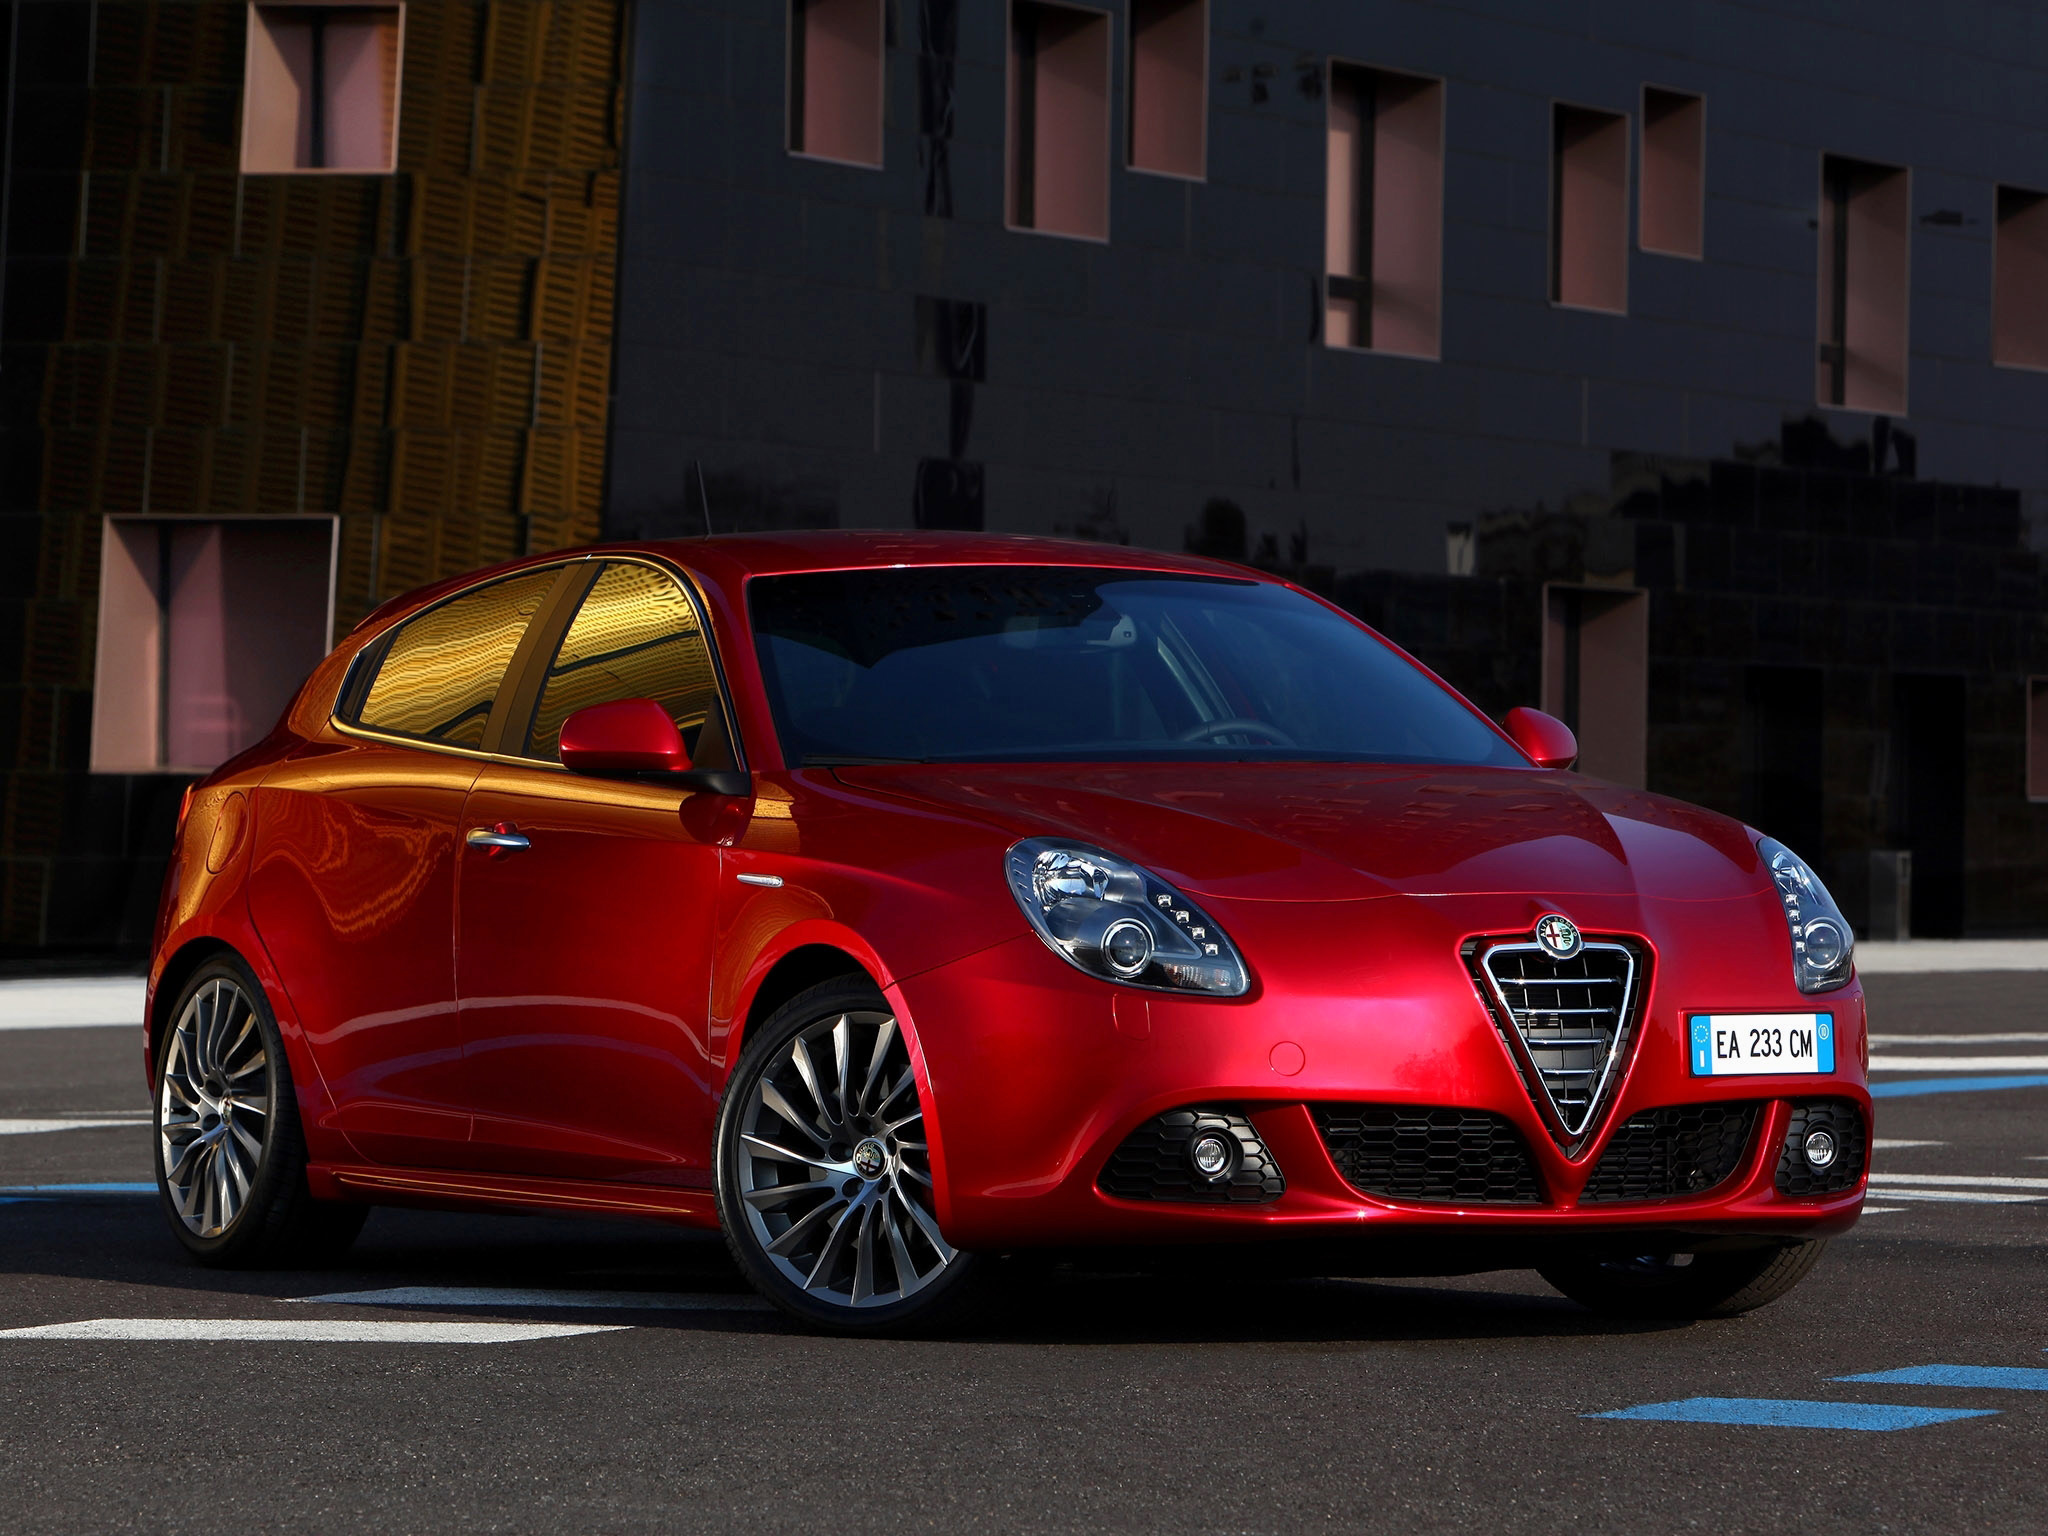 17 alfa romeo giulietta hd wallpapers background images wallpaper abyss. Black Bedroom Furniture Sets. Home Design Ideas